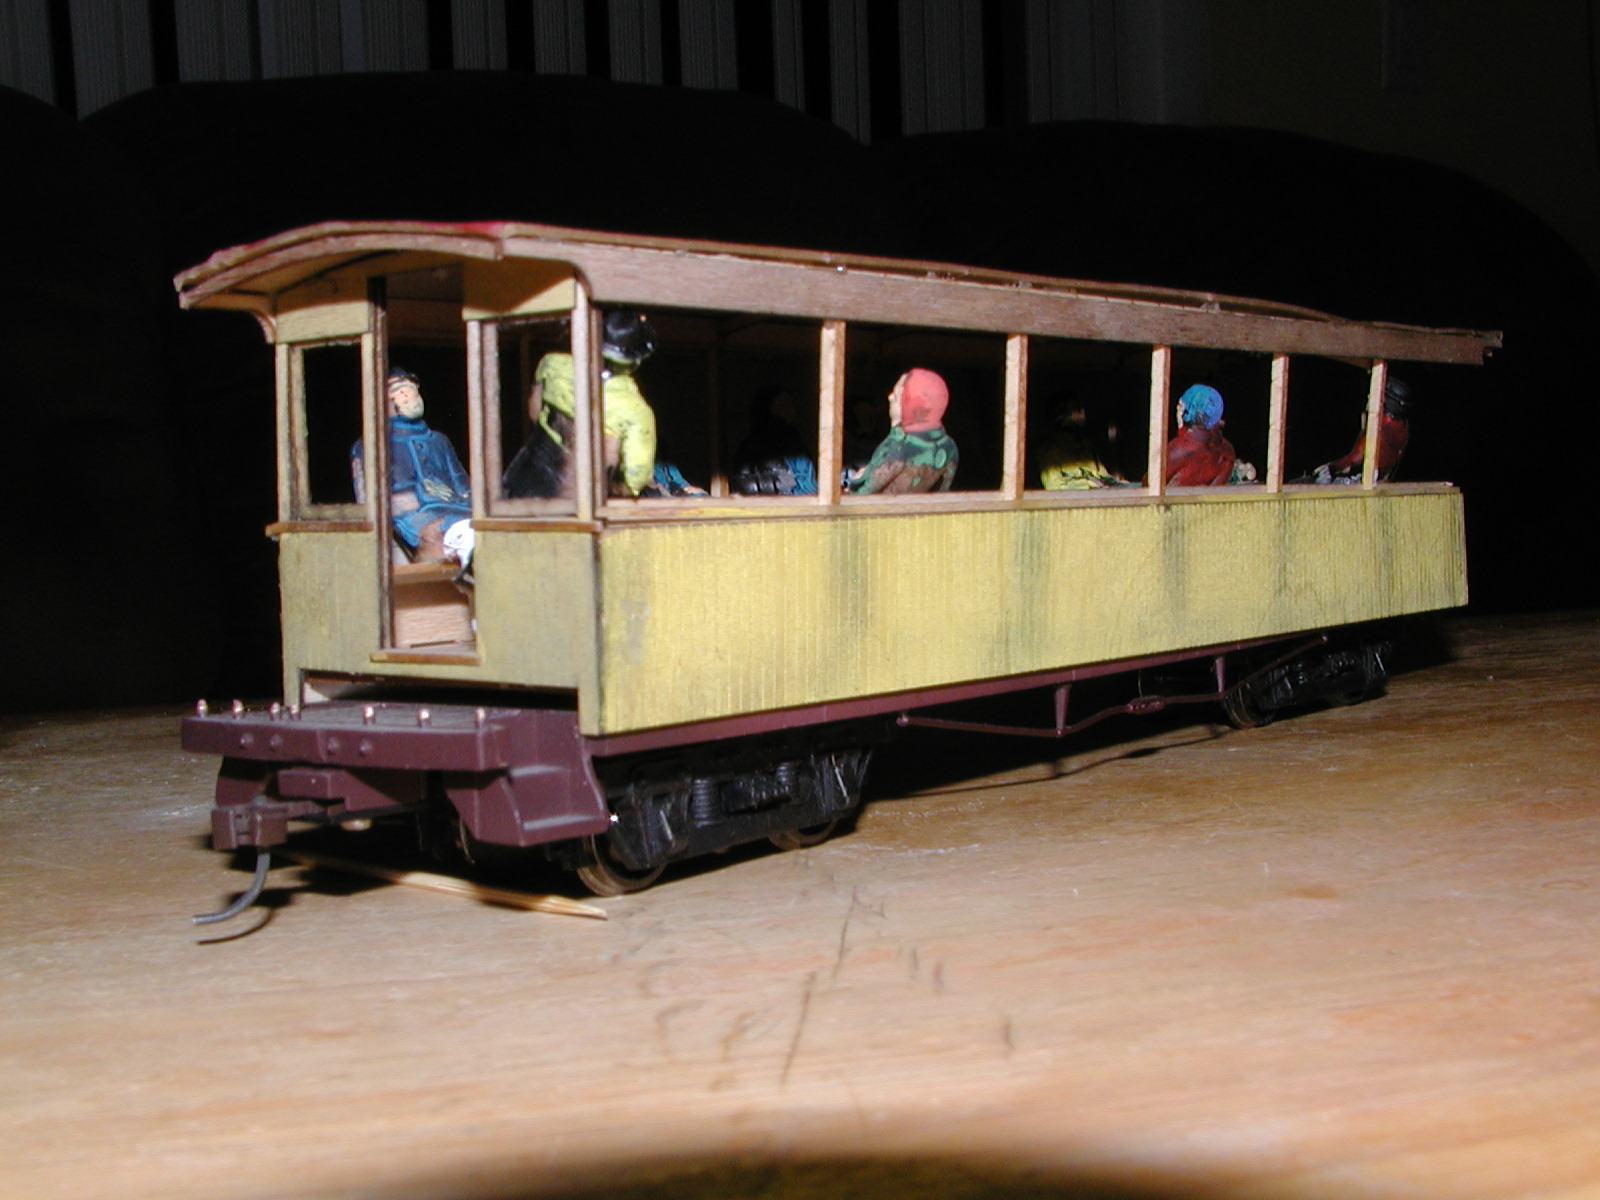 Norman's Train Model of a 3rd Class Passenger Car